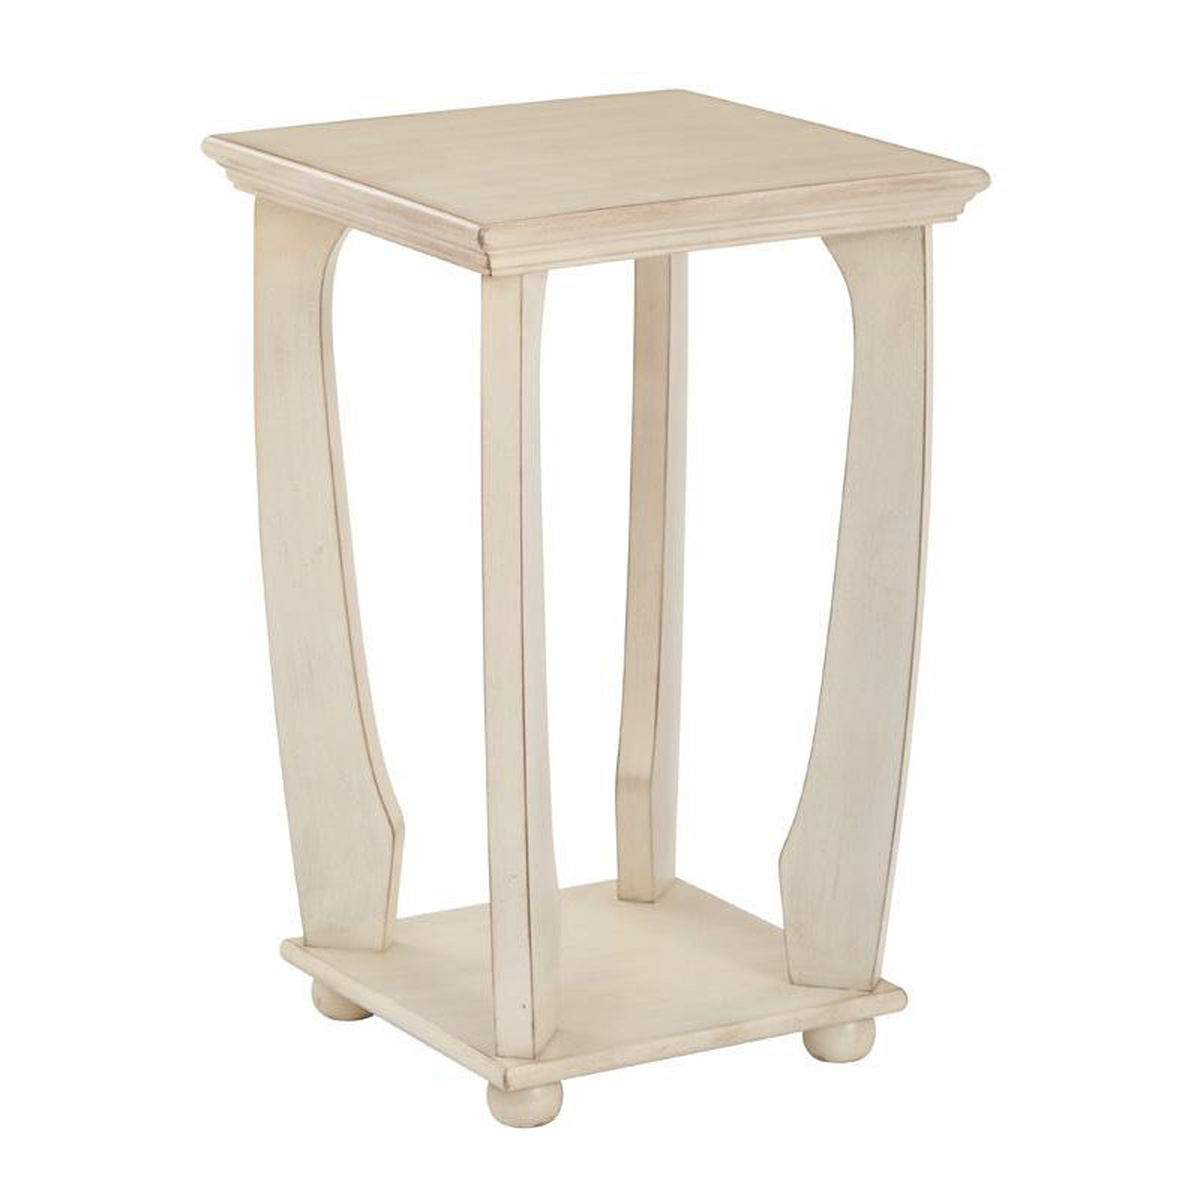 mila square accent table bizchair office star products main wood our osp designs antique white now anchor lamp tile patio outdoor furniture easy fruity mixed drinks small